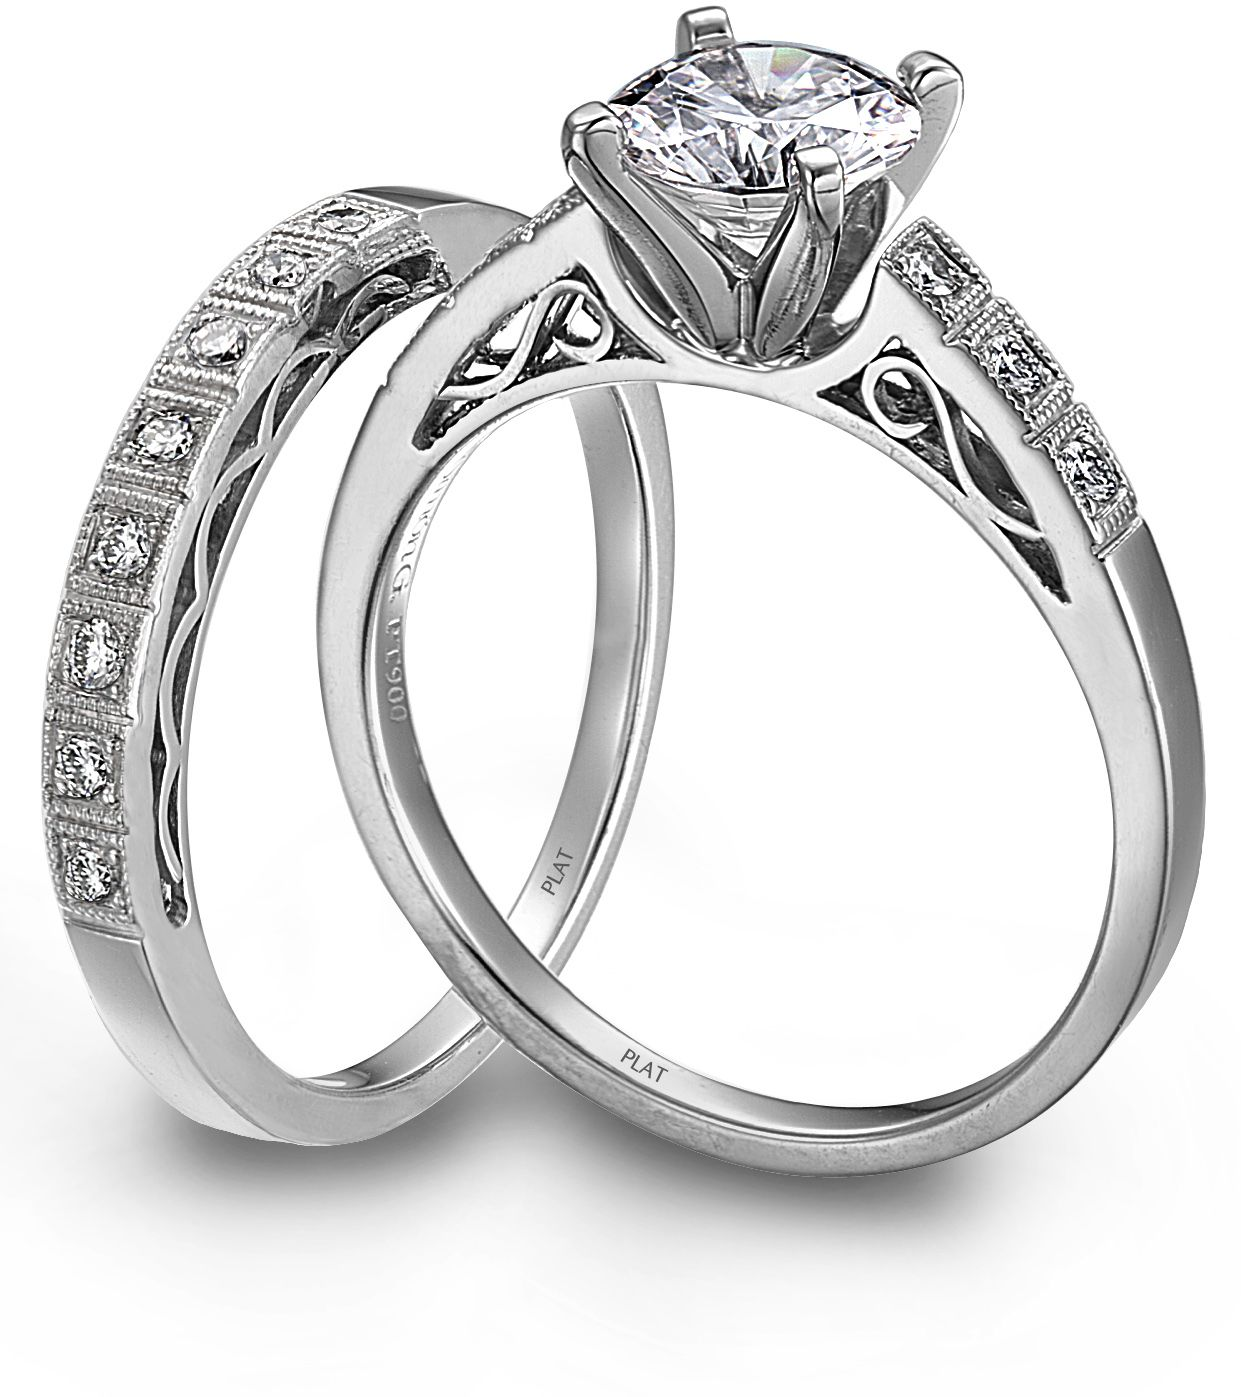 Wedding rings diamond  Exotic Wedding Rings | Wedding Photos - Pictures by WeddingsofJoy ...